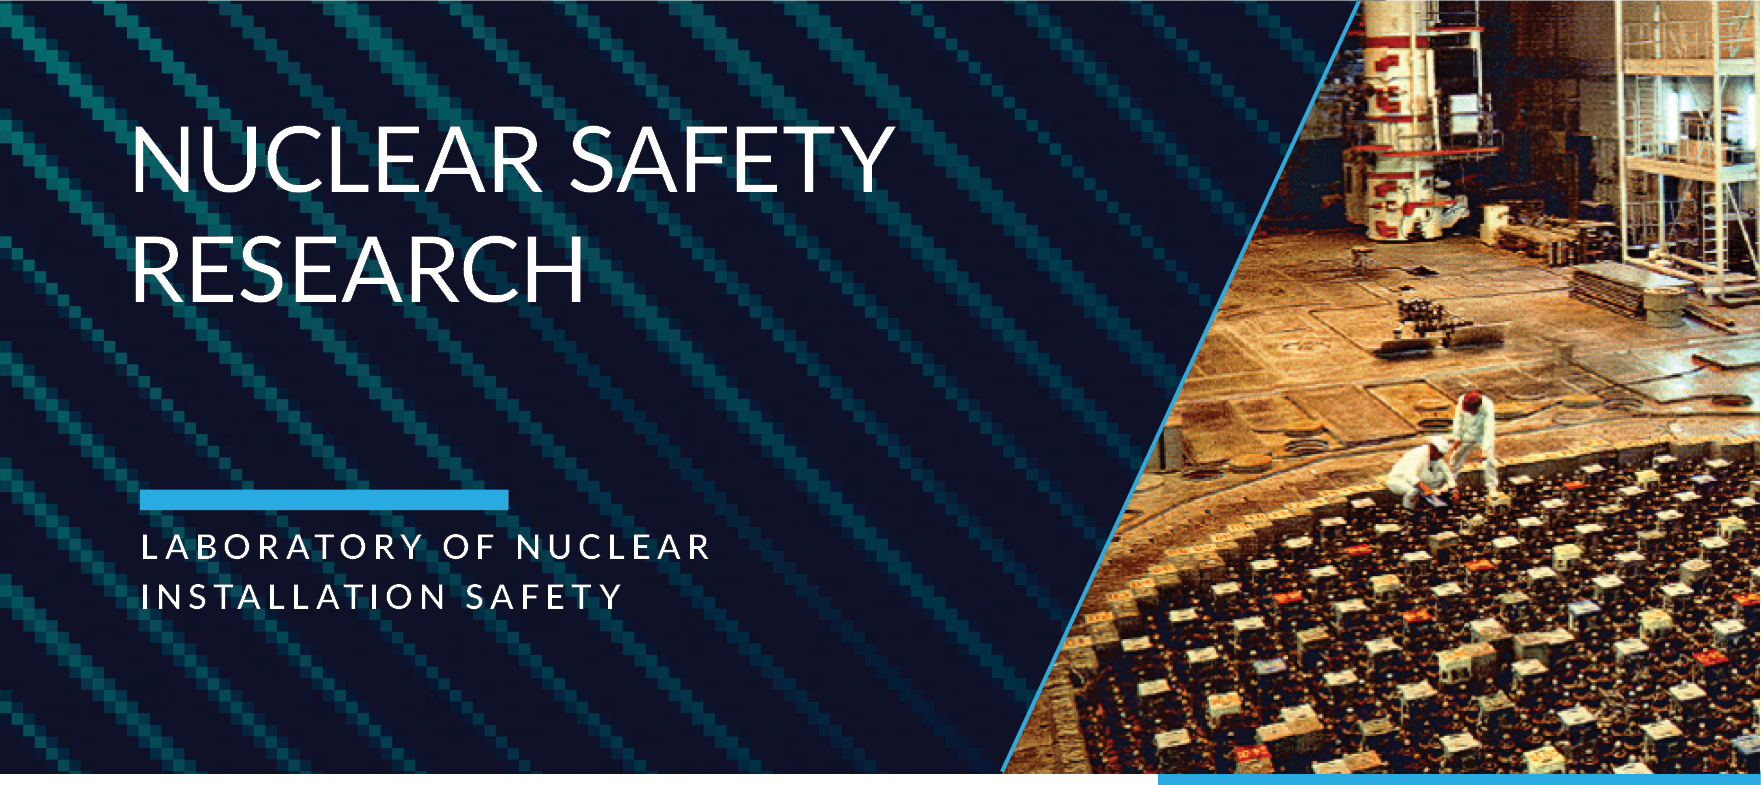 Laboratory of Nuclear Installation Safety